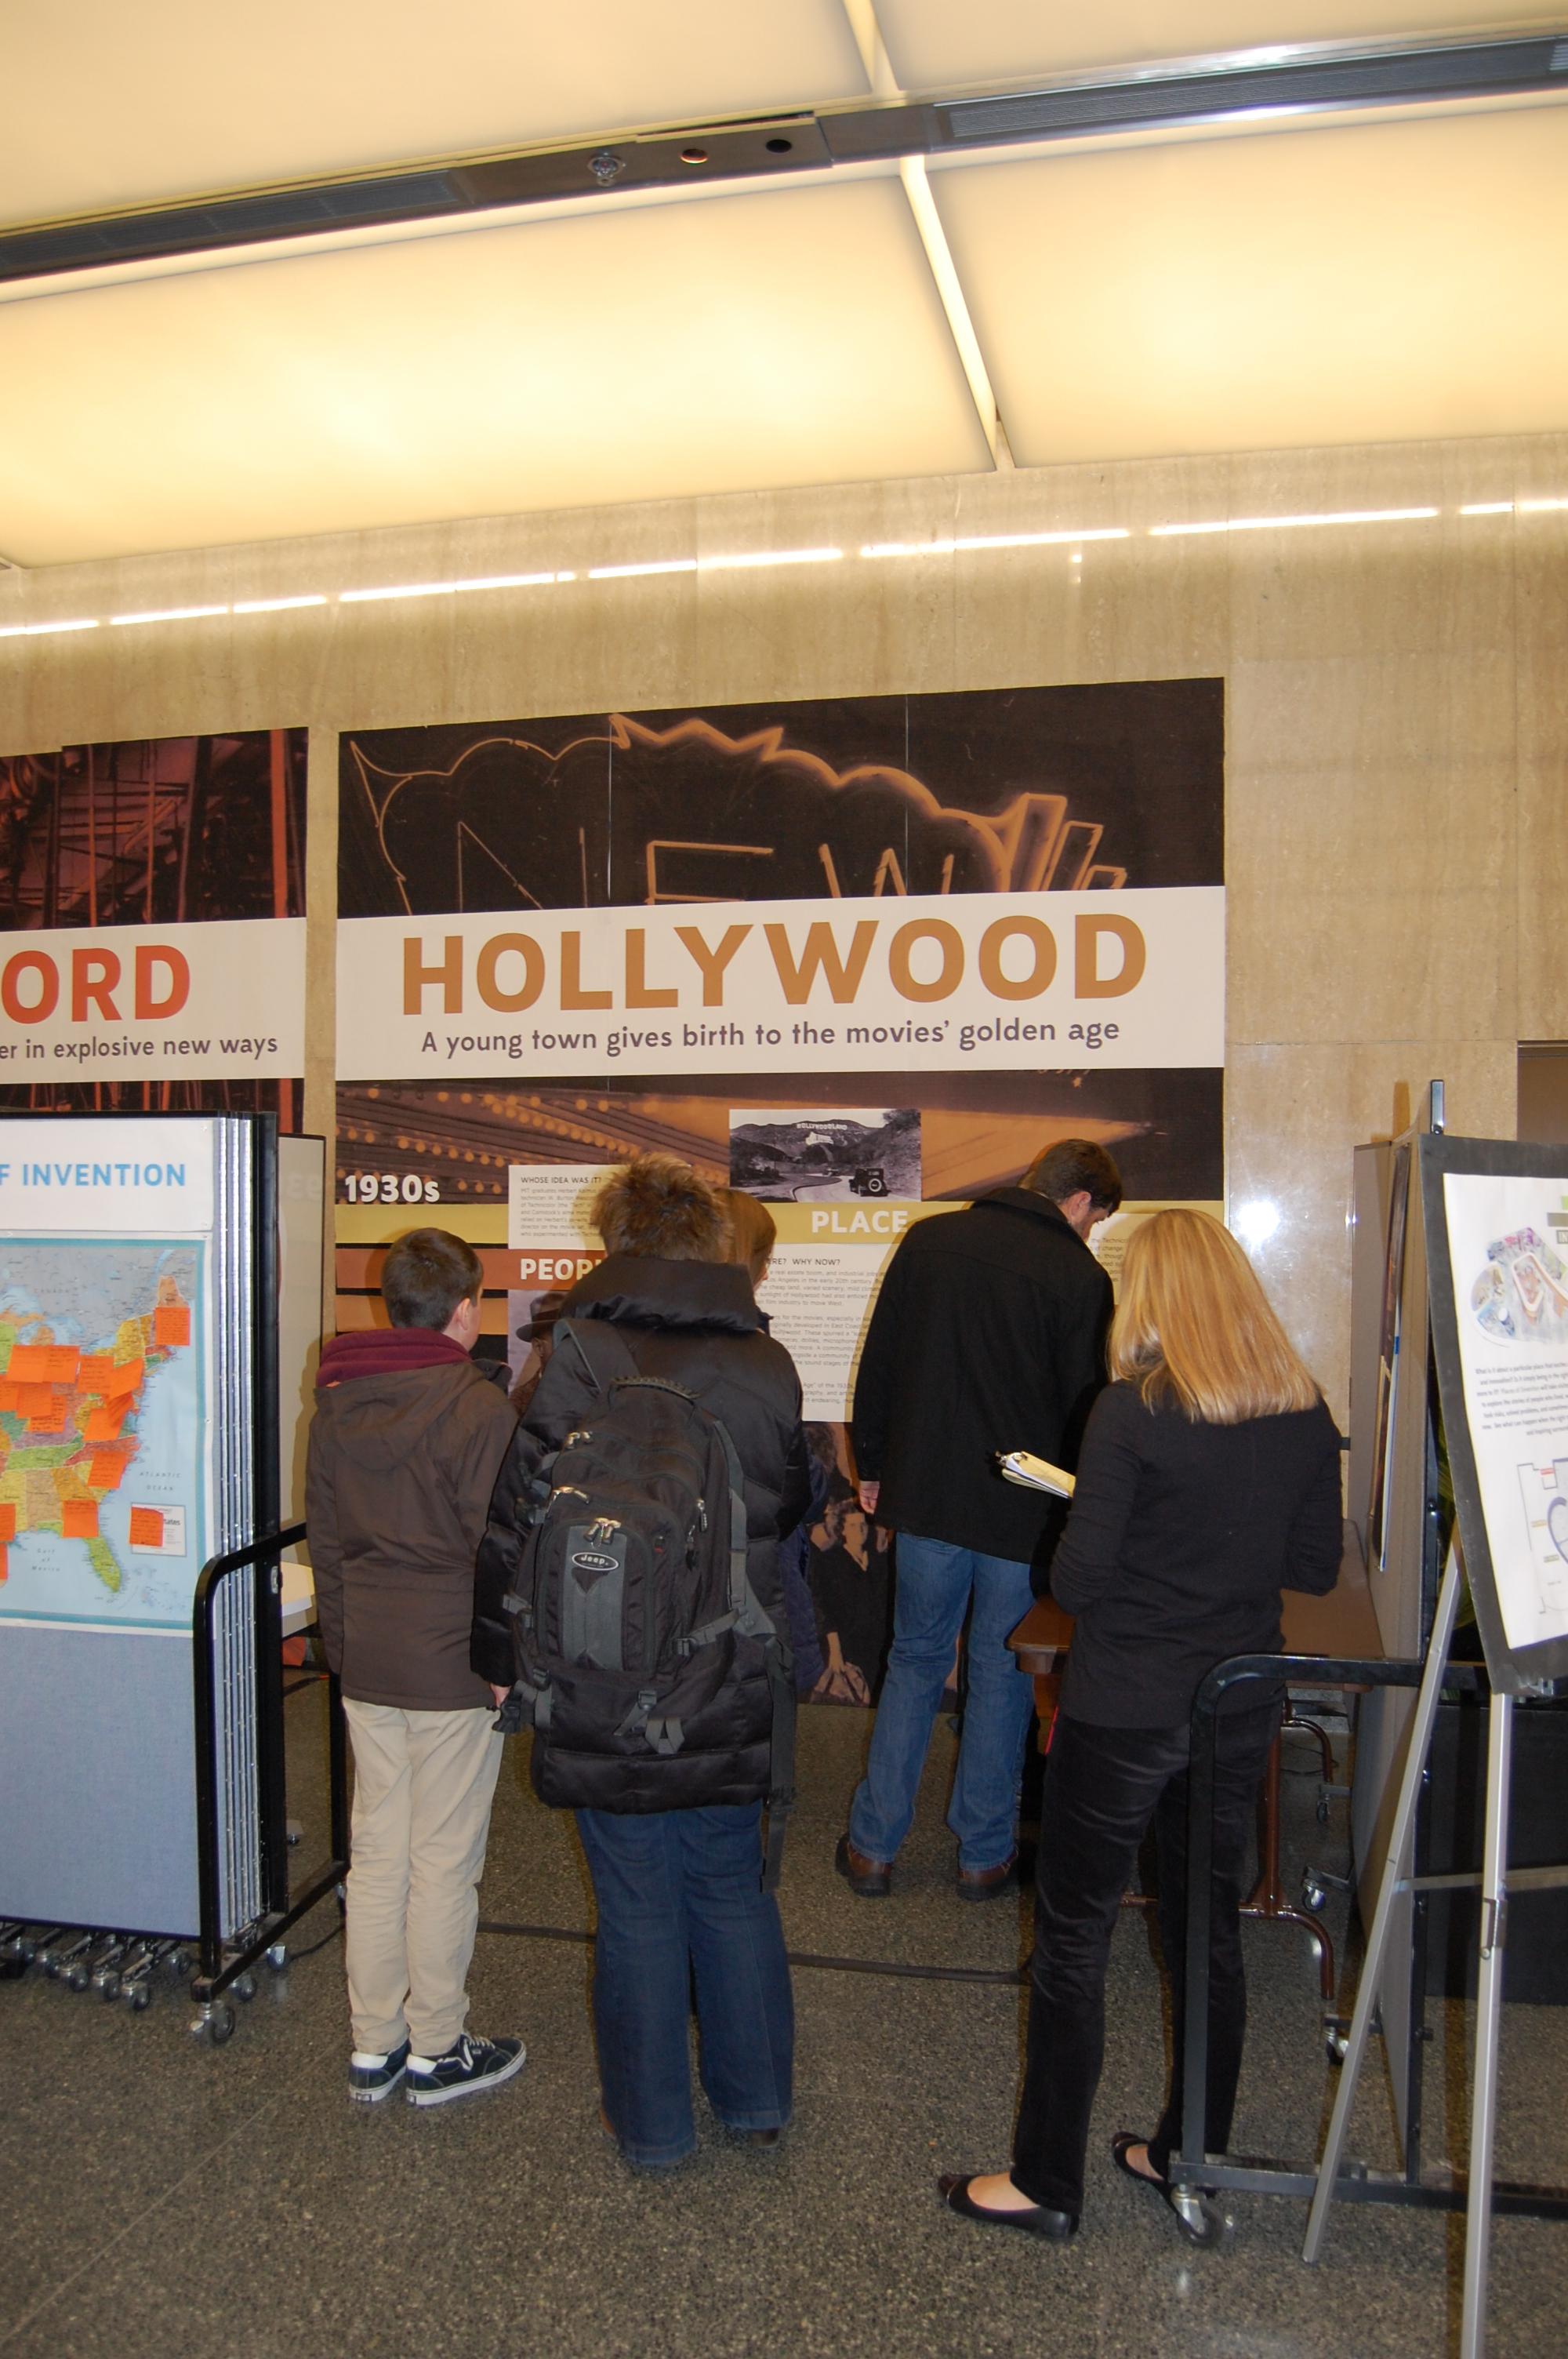 The prototyping process featuring two case studies–Hartford, CT, and Hollywood.